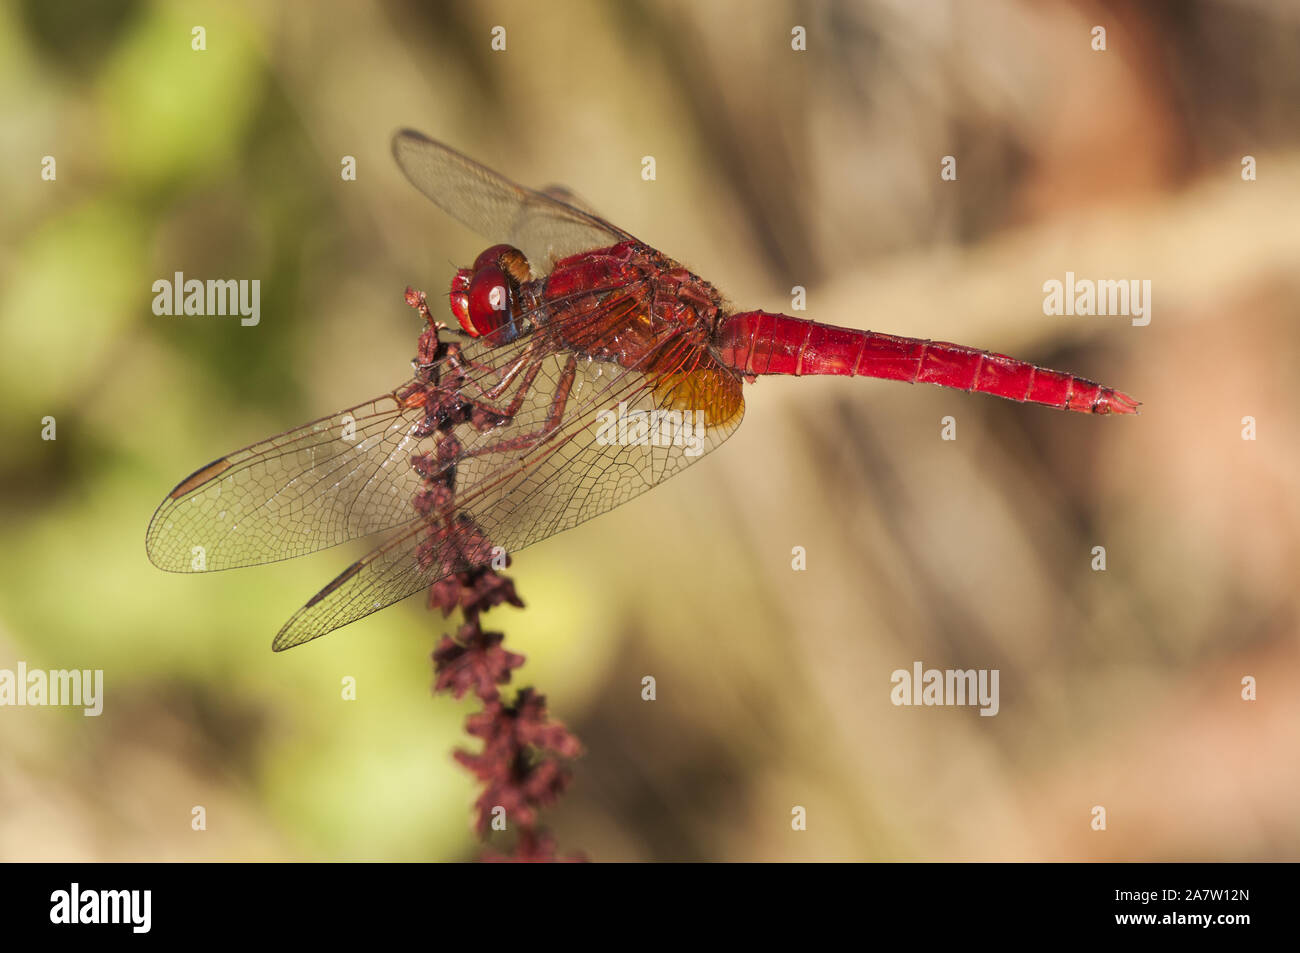 Crocothemis erythraea common scarlet-darter dragonfly of intense red color perched in a reed by a stream natural light Stock Photo